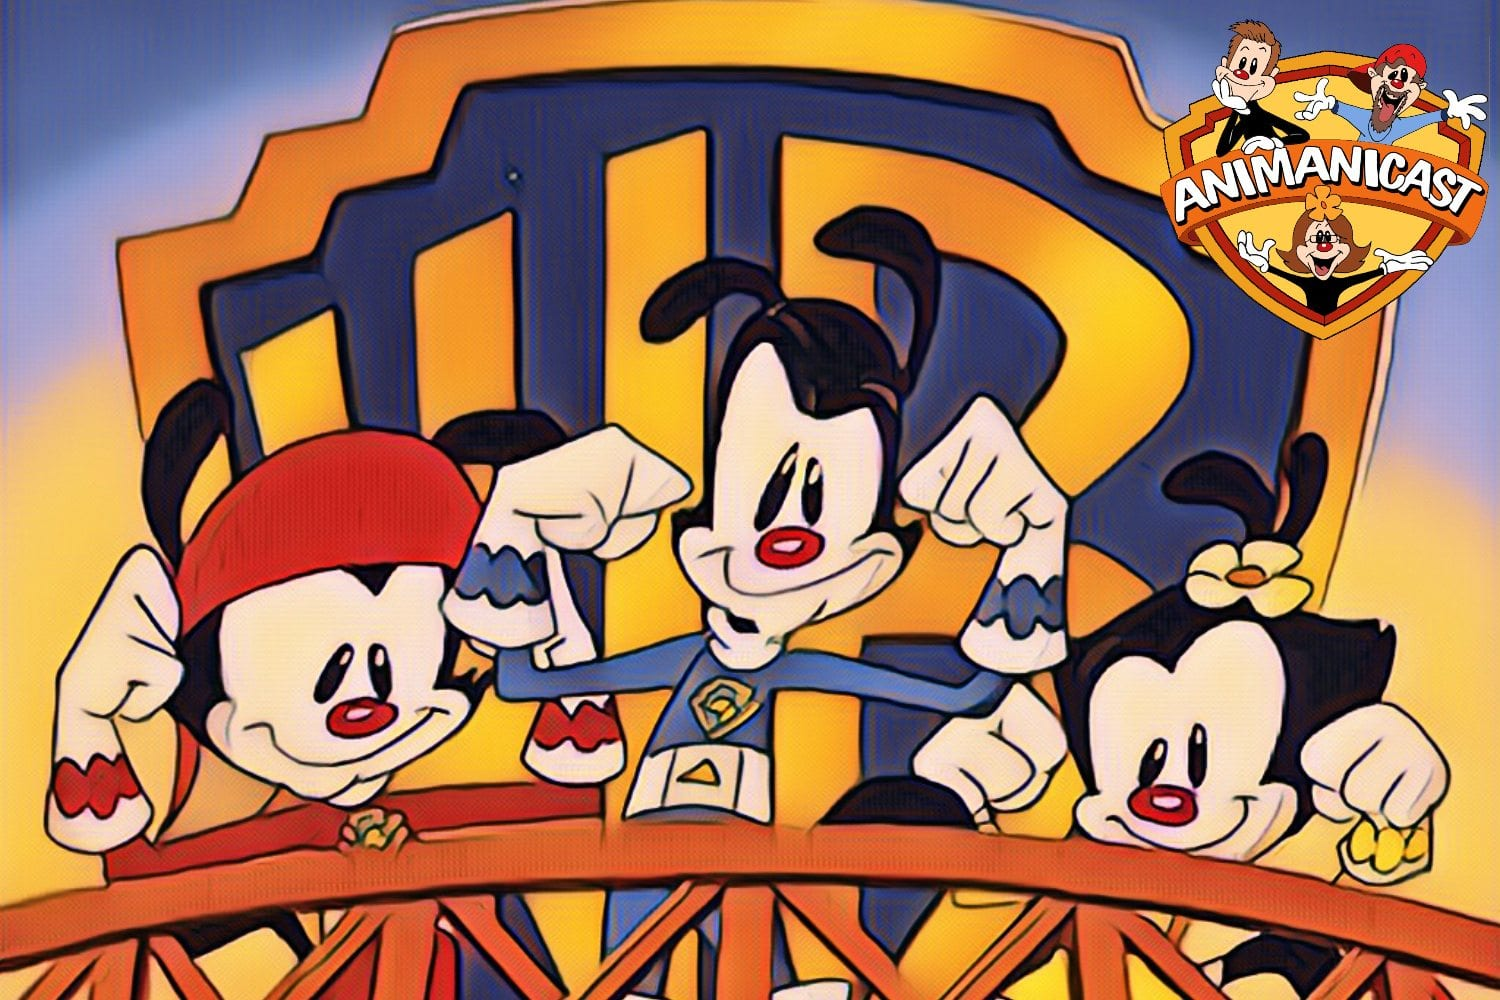 Animanicast #70: Discussing Super Strong Warner Siblings, A Quake, Wakko's New Gookie & Animaniacs Reboot News